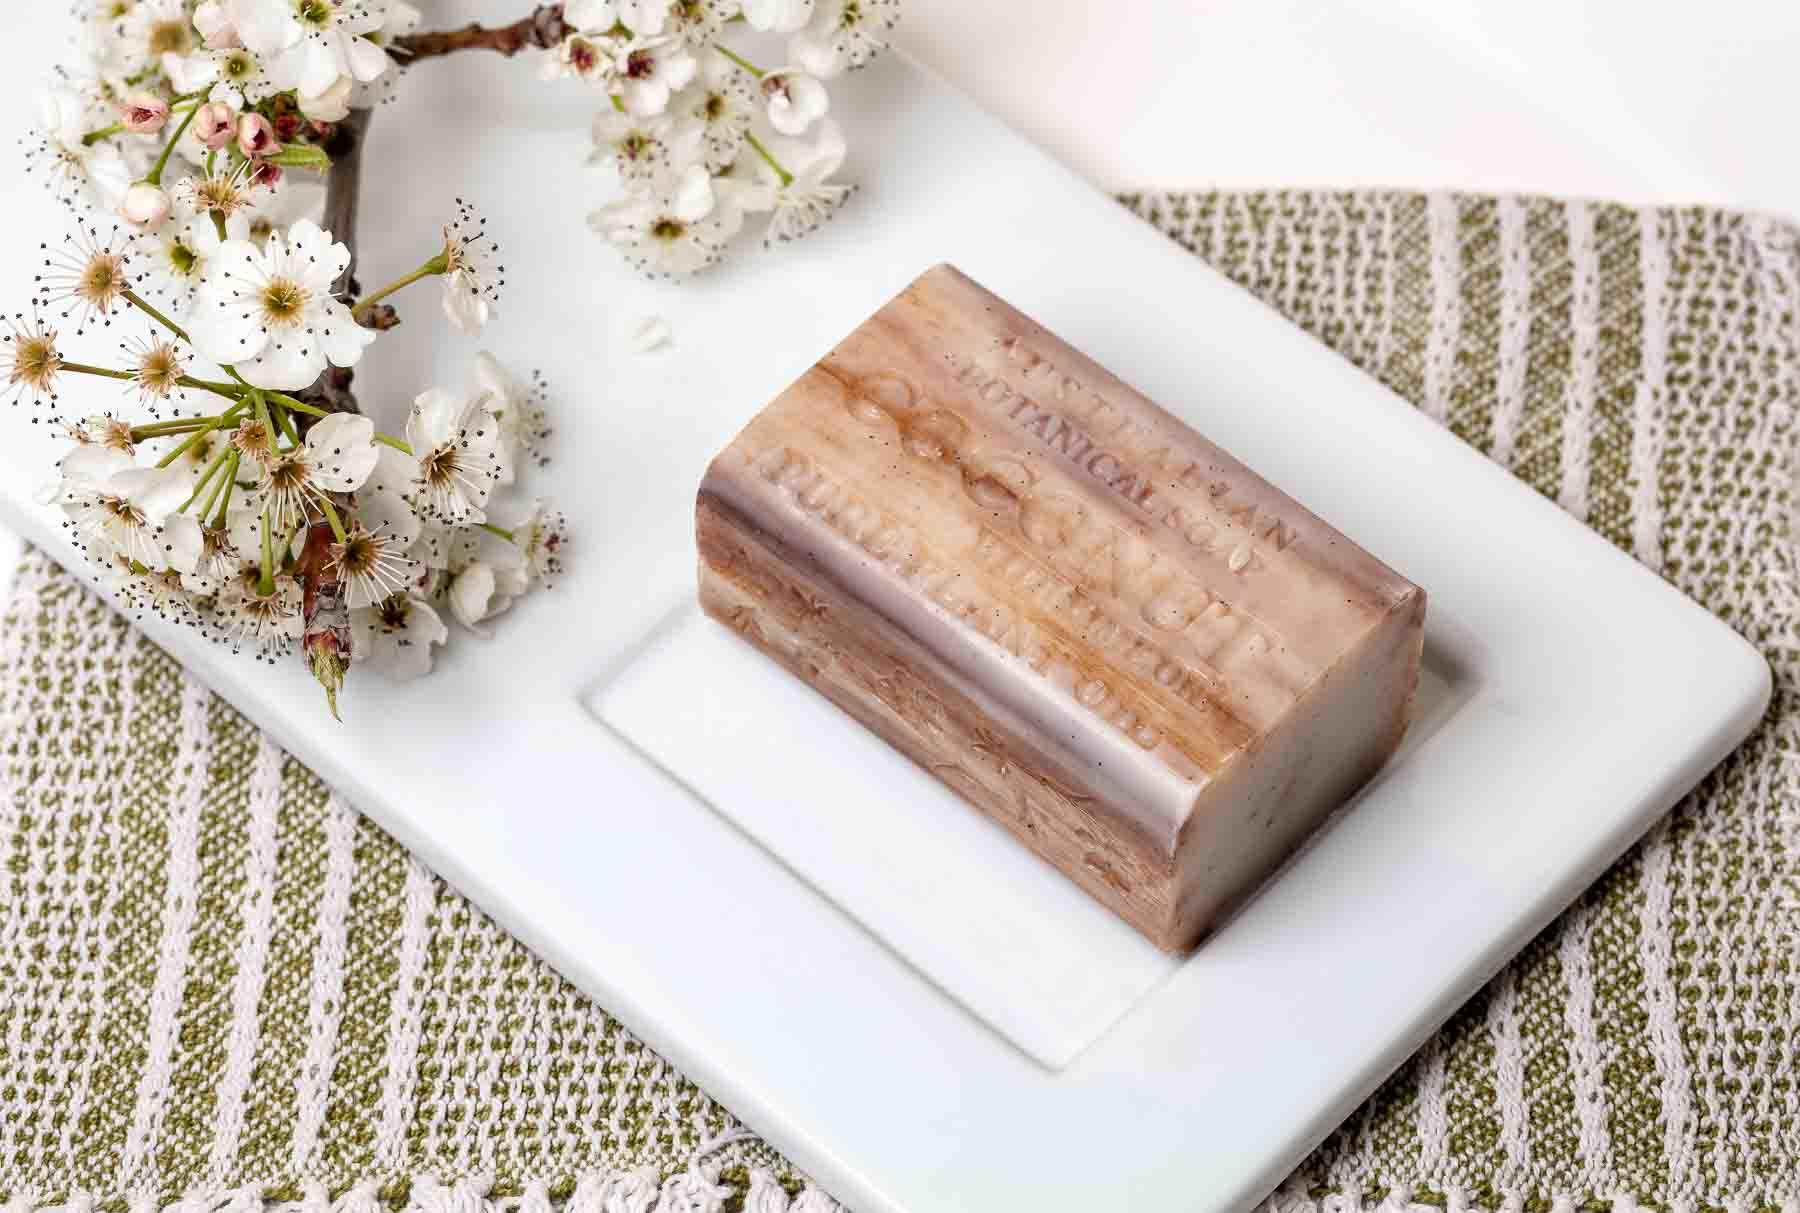 Australian Botanic Soap coconut dry on soap dish top side view with flowers - Lifestyle advertising product photo